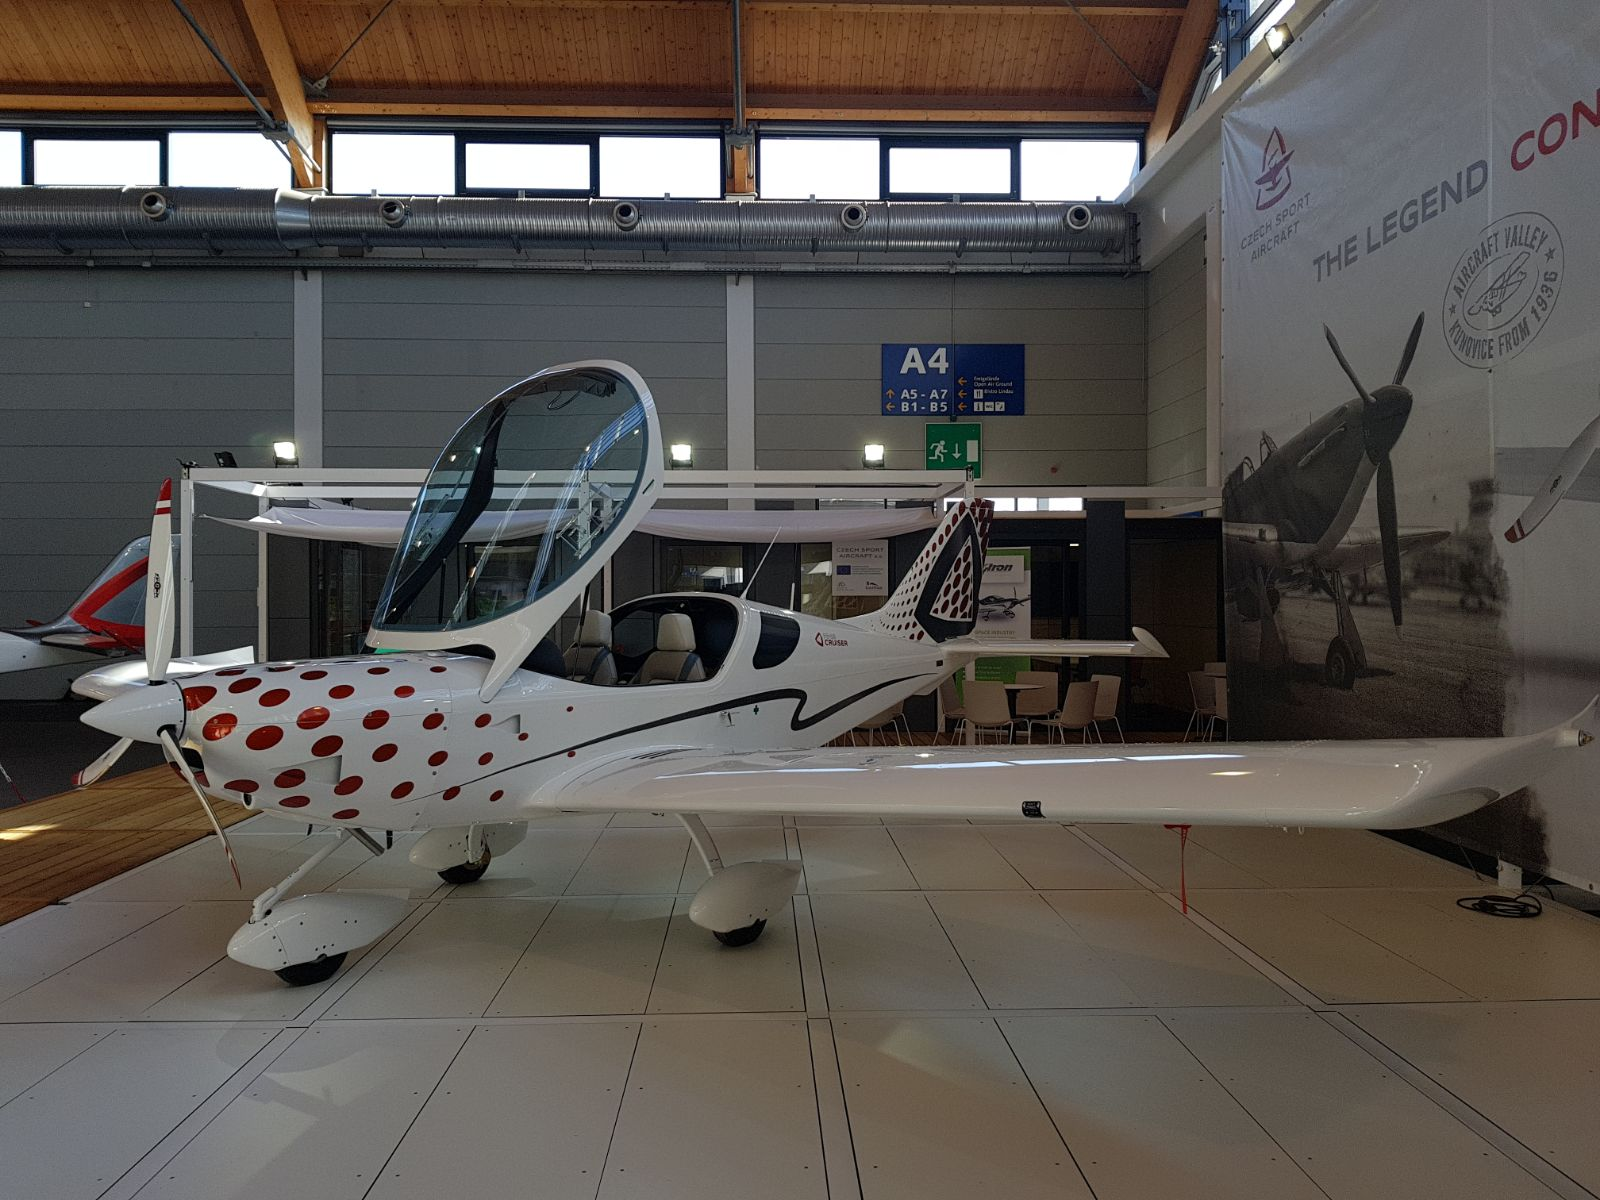 The Aero in Friedrichshafen started on Wendesday, 18th April